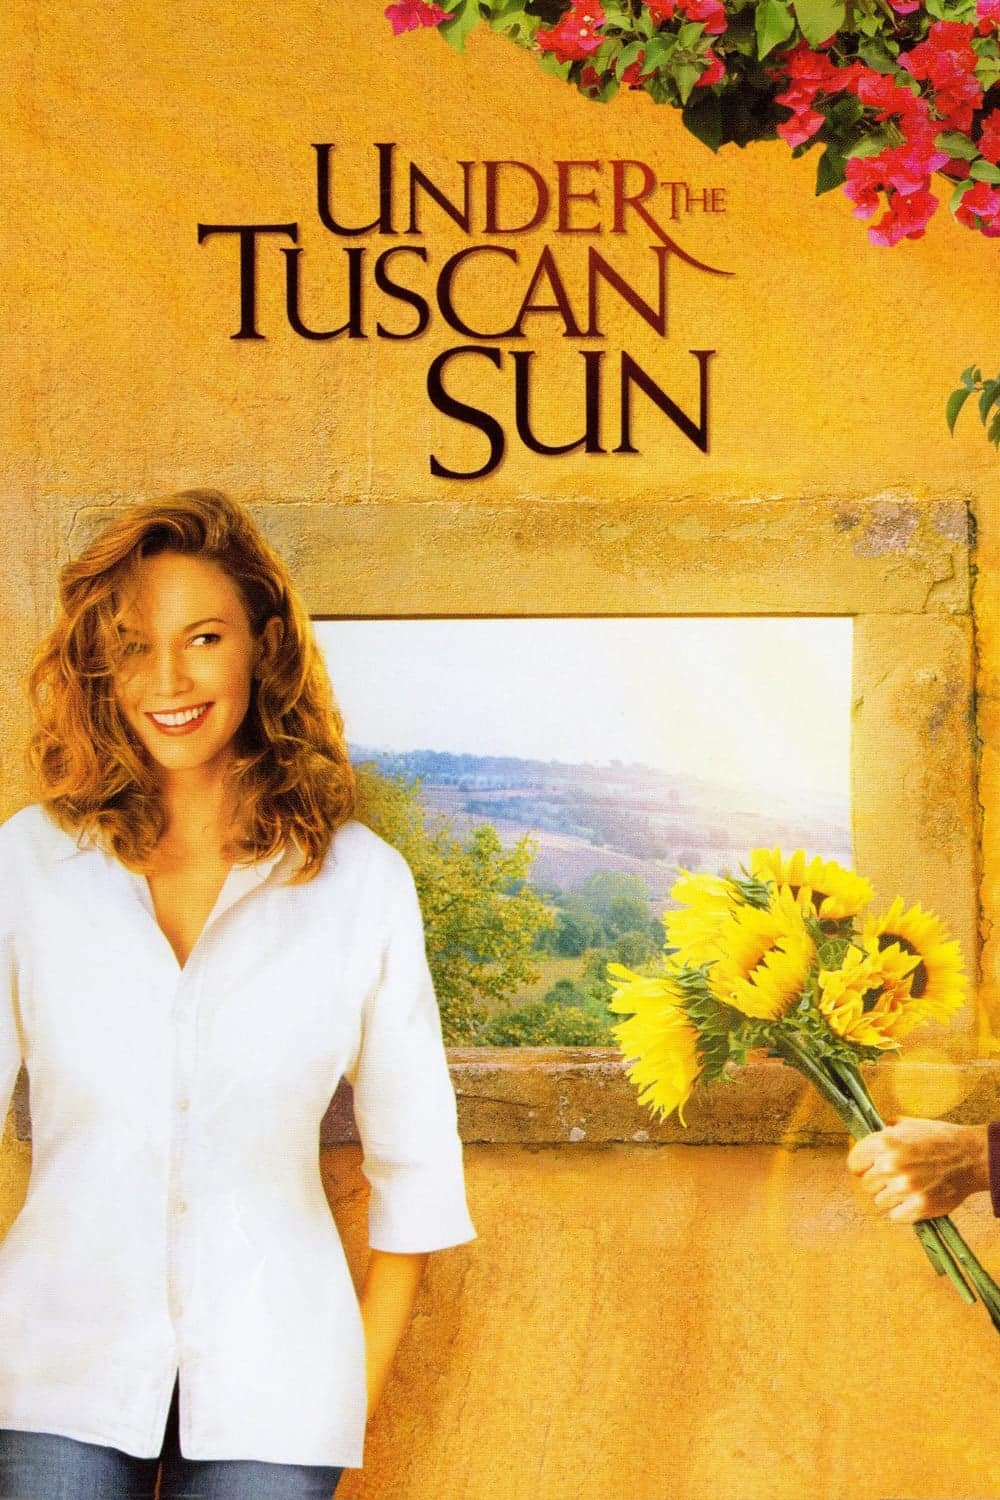 Under the Tuscan Sun, 2003